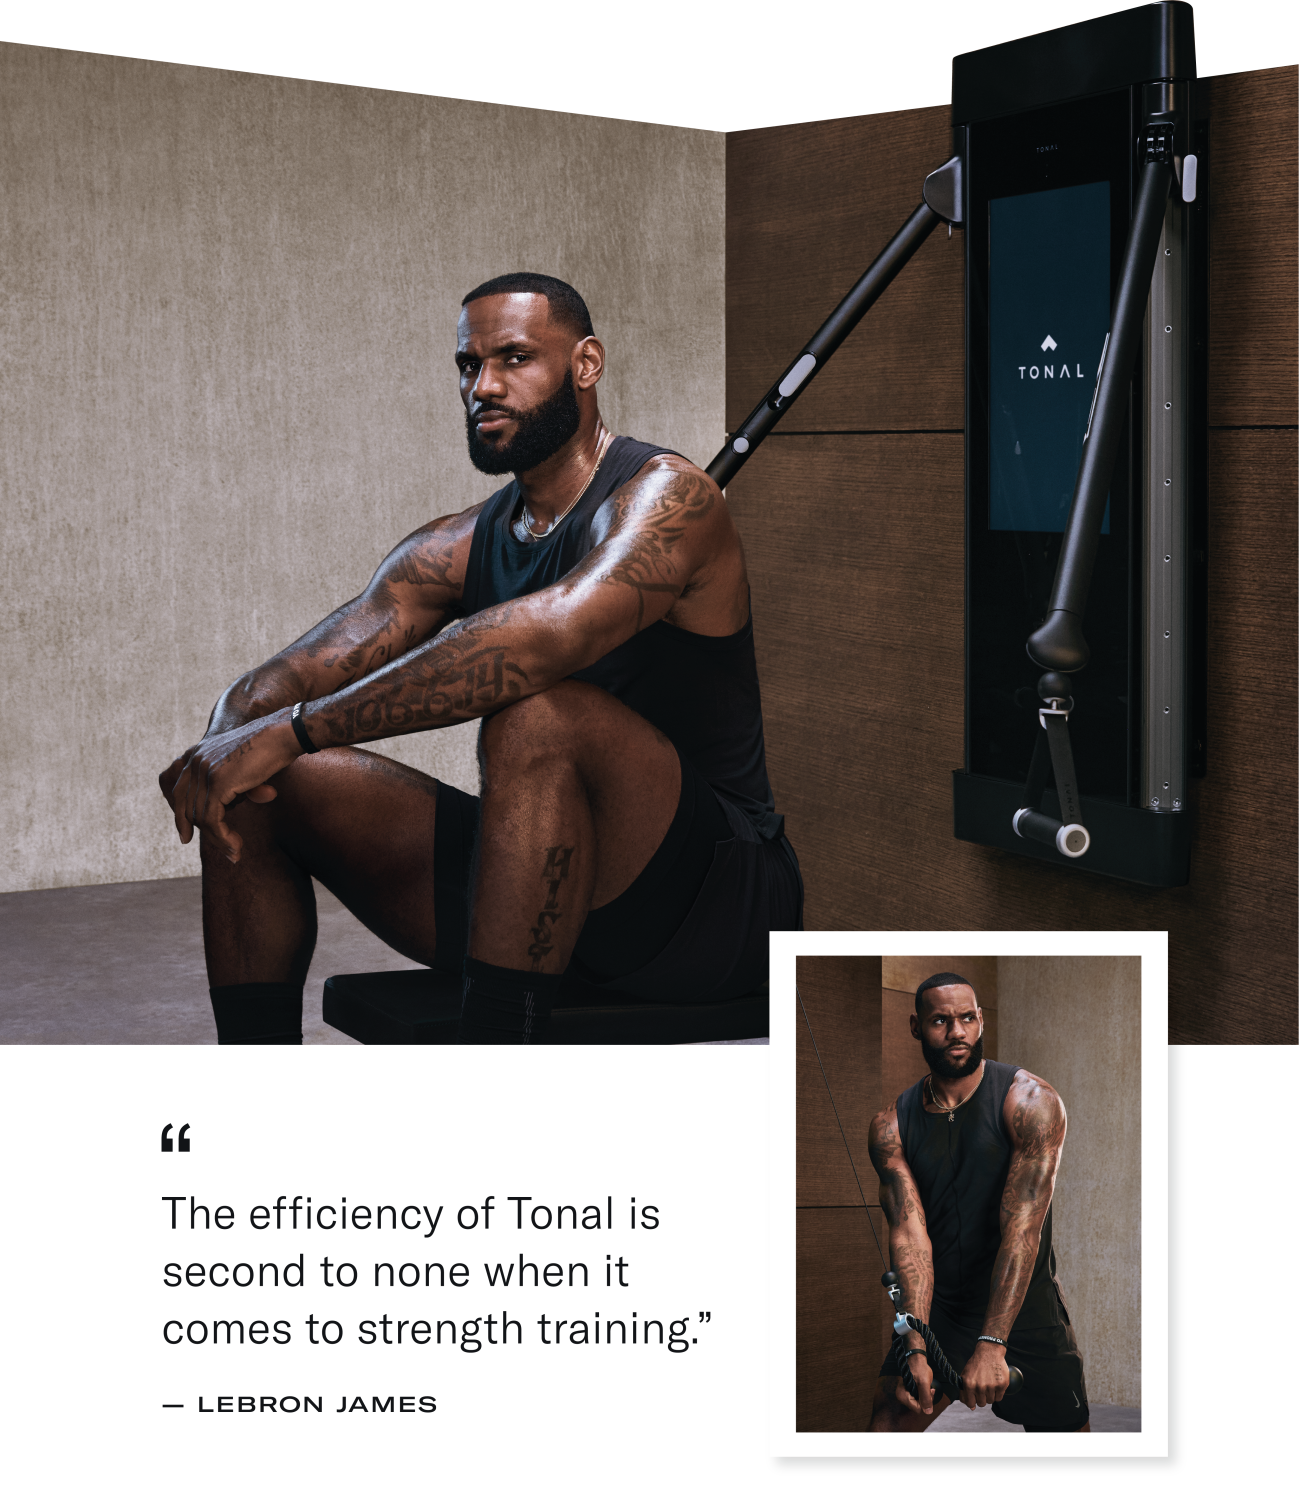 LeBron James sitting in front of a Tonal machine and working out on Tonal.